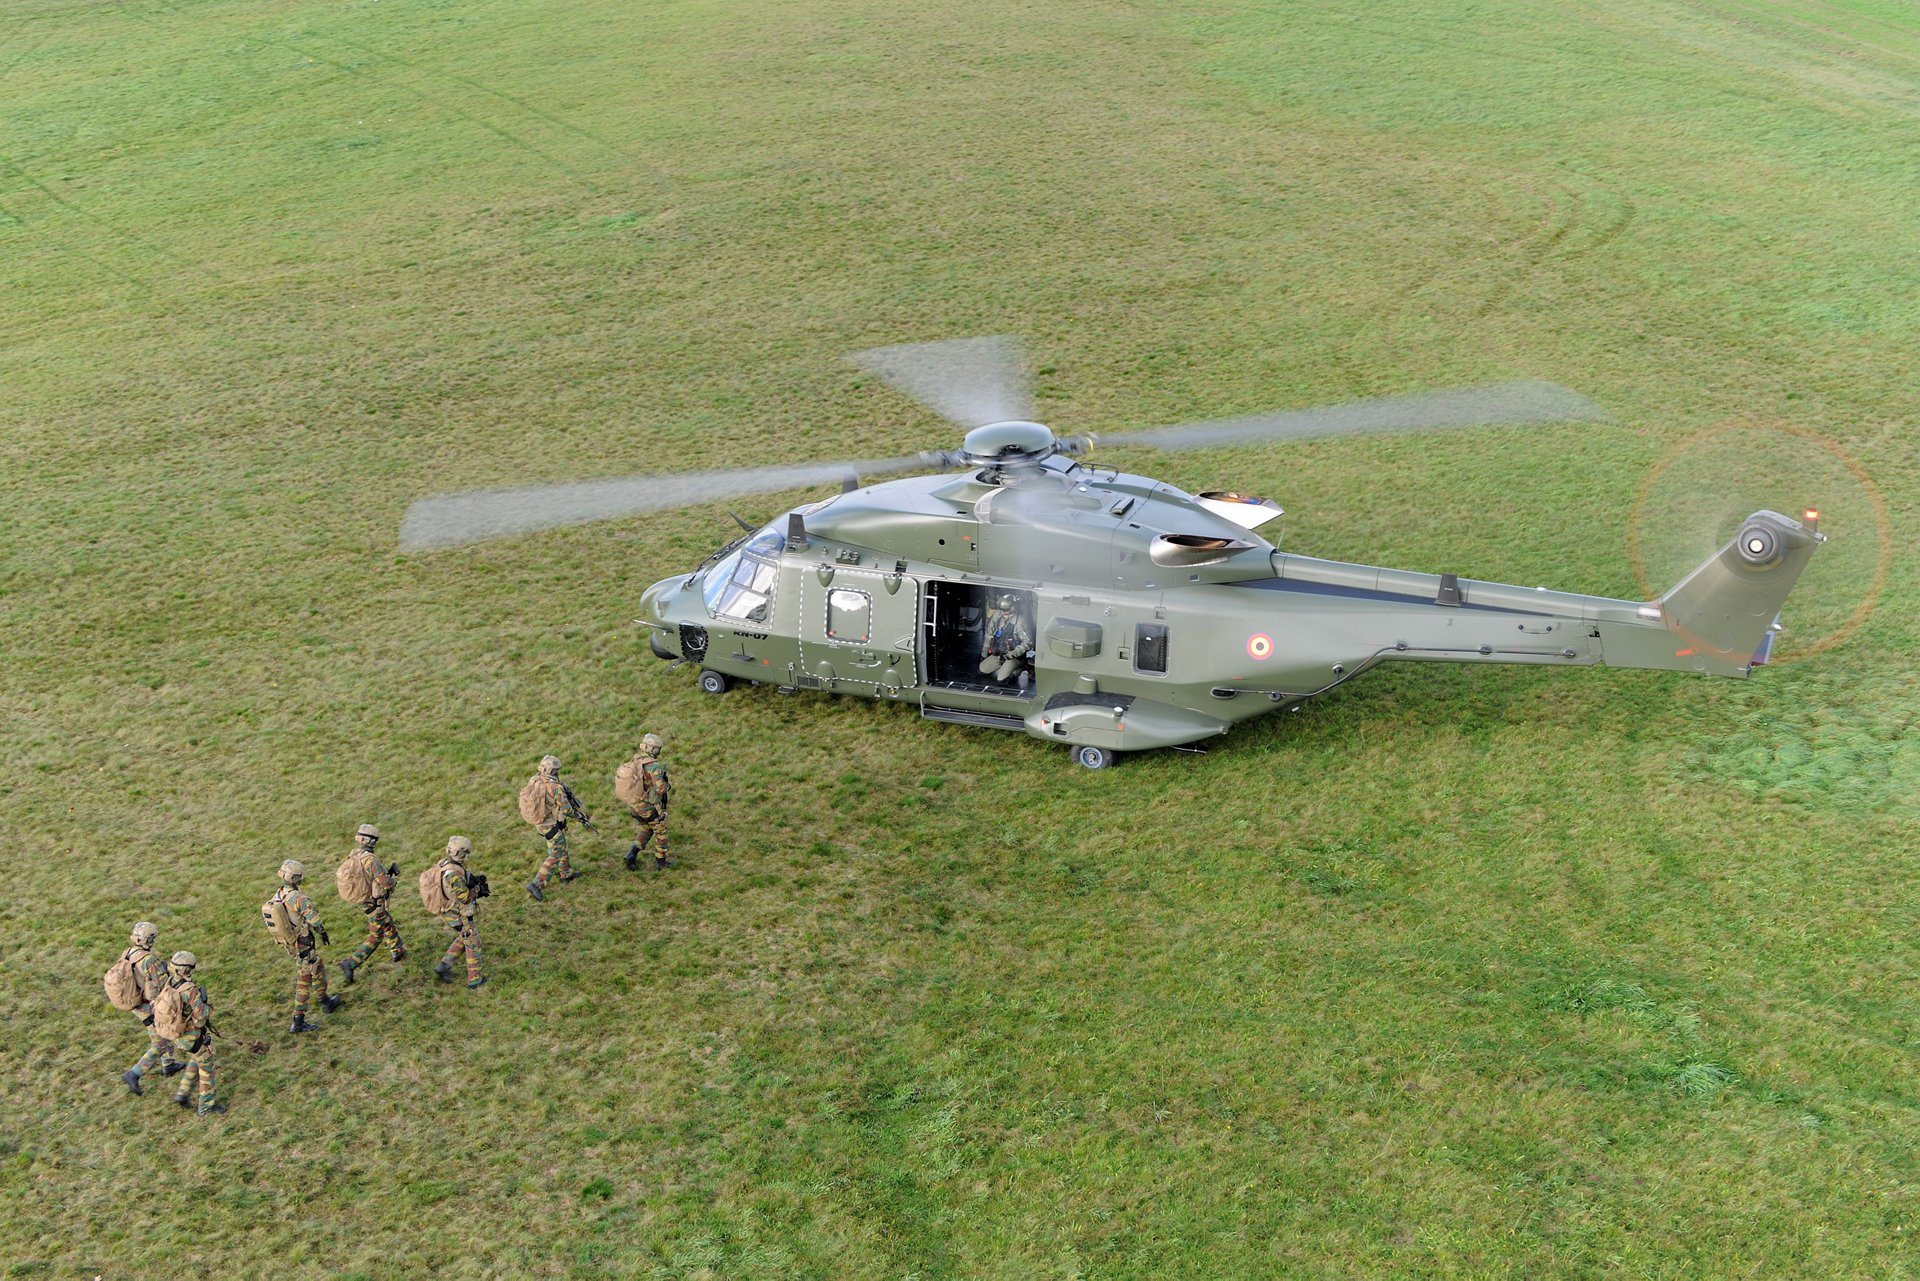 The NH90 TTH can be rapidly configured for troop transport with a 20-seat configuration, armed tactical transport and combat search and rescue